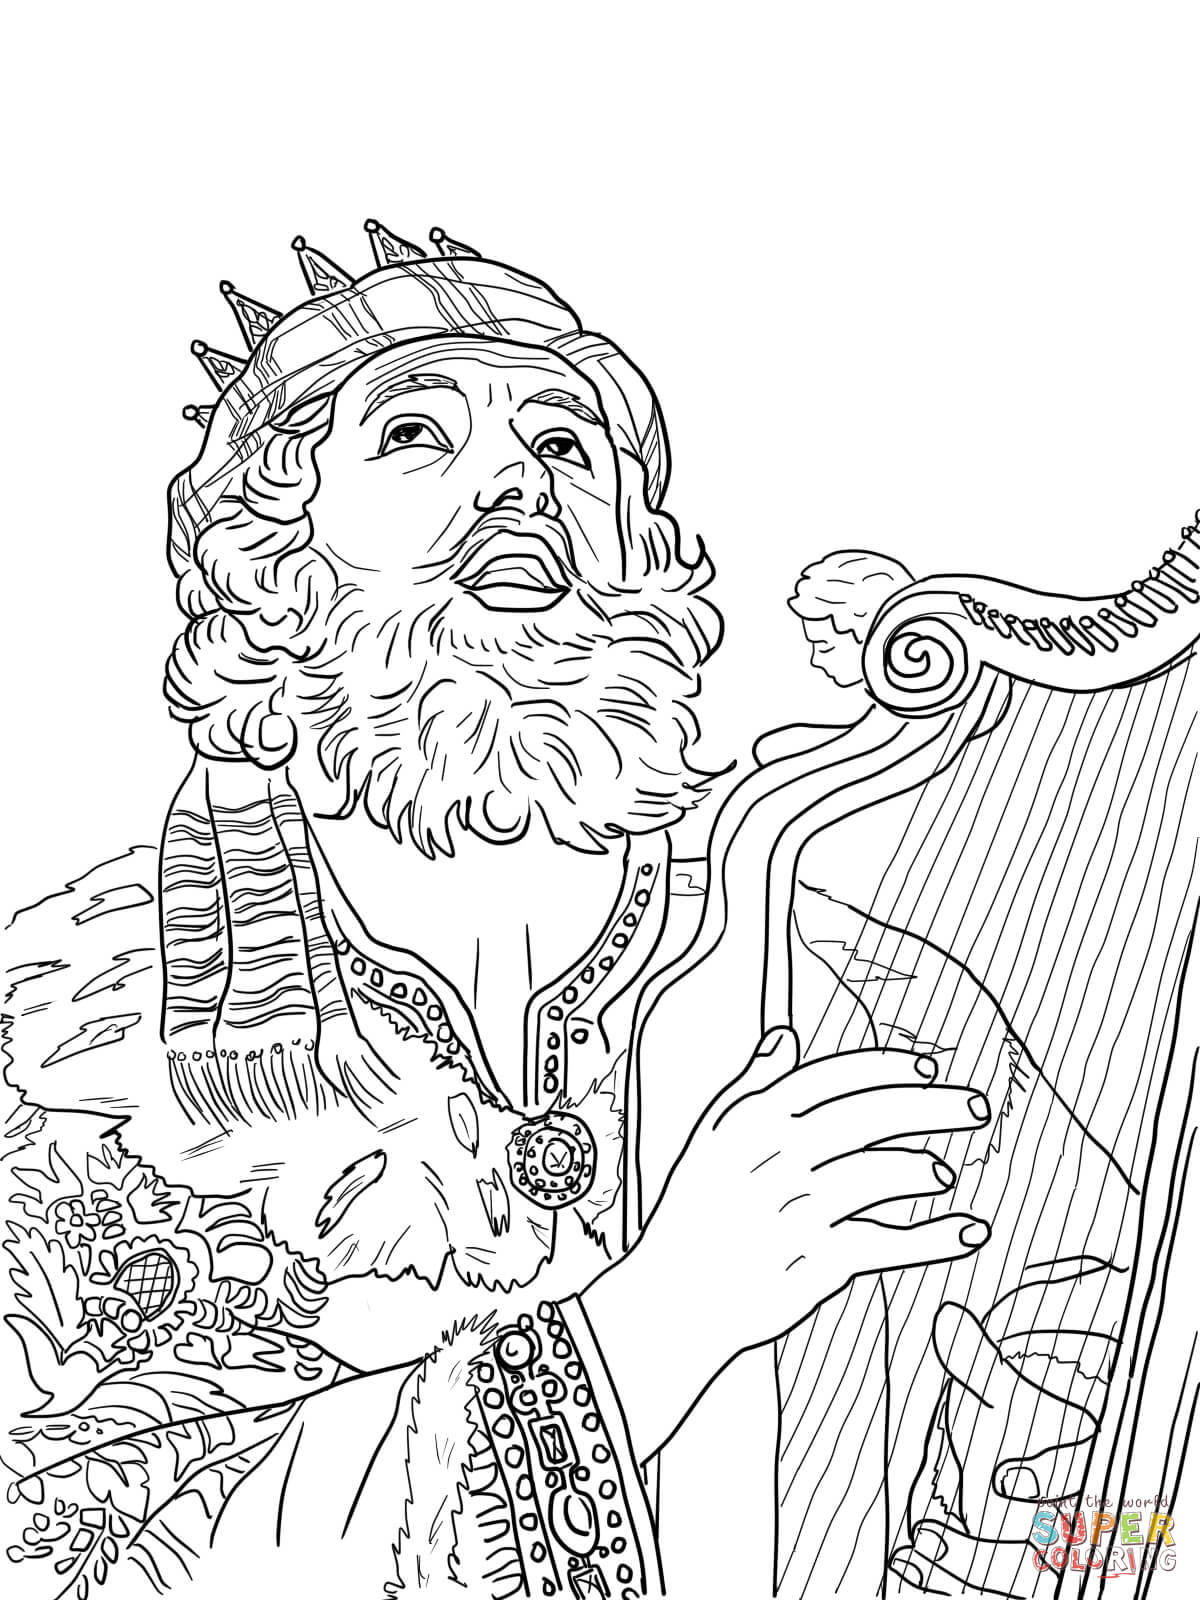 King David Coloring Pages Coloring Pages